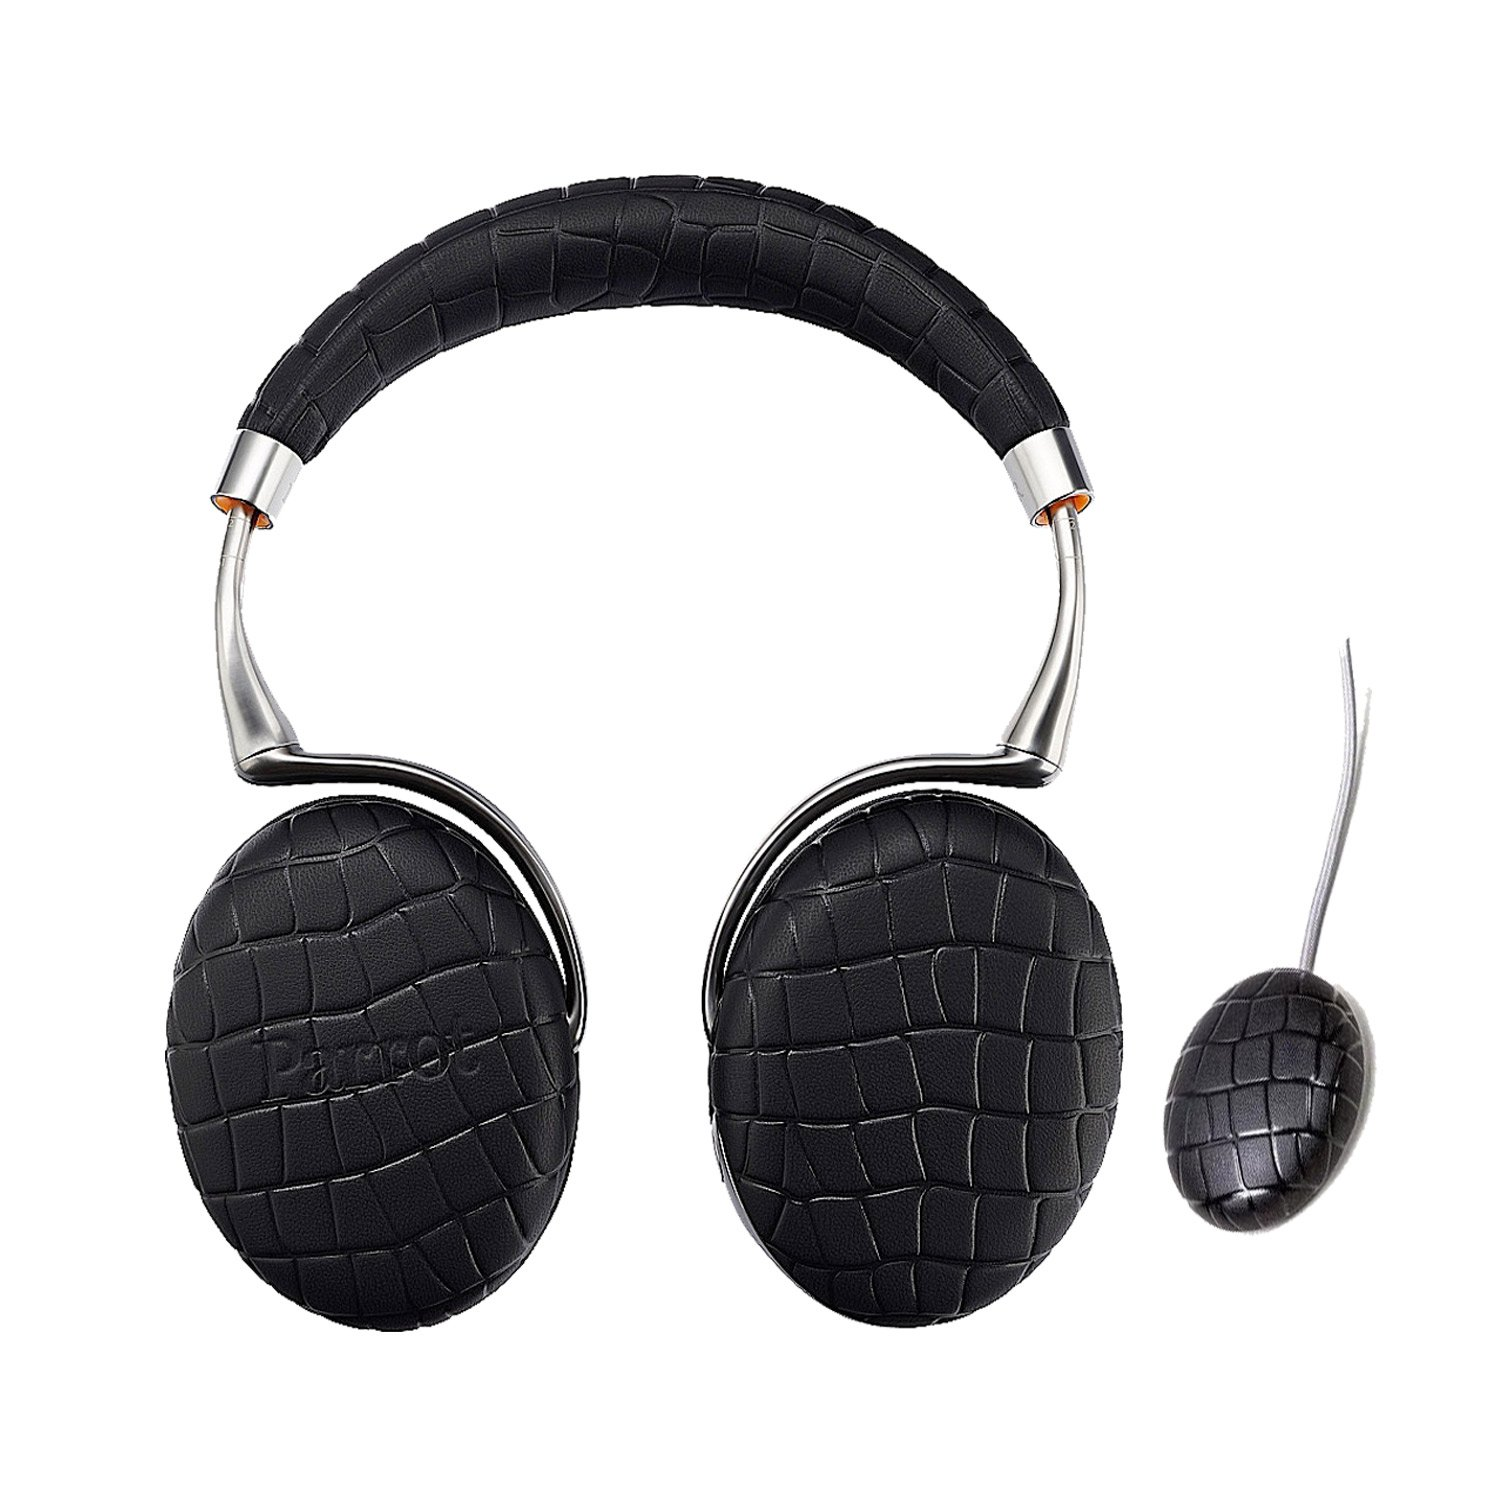 Parrot Zik 3 Wireless Noise Cancelling Headphones With Parrot Wireless Charge Accessory in Matching Color (Black Croc)